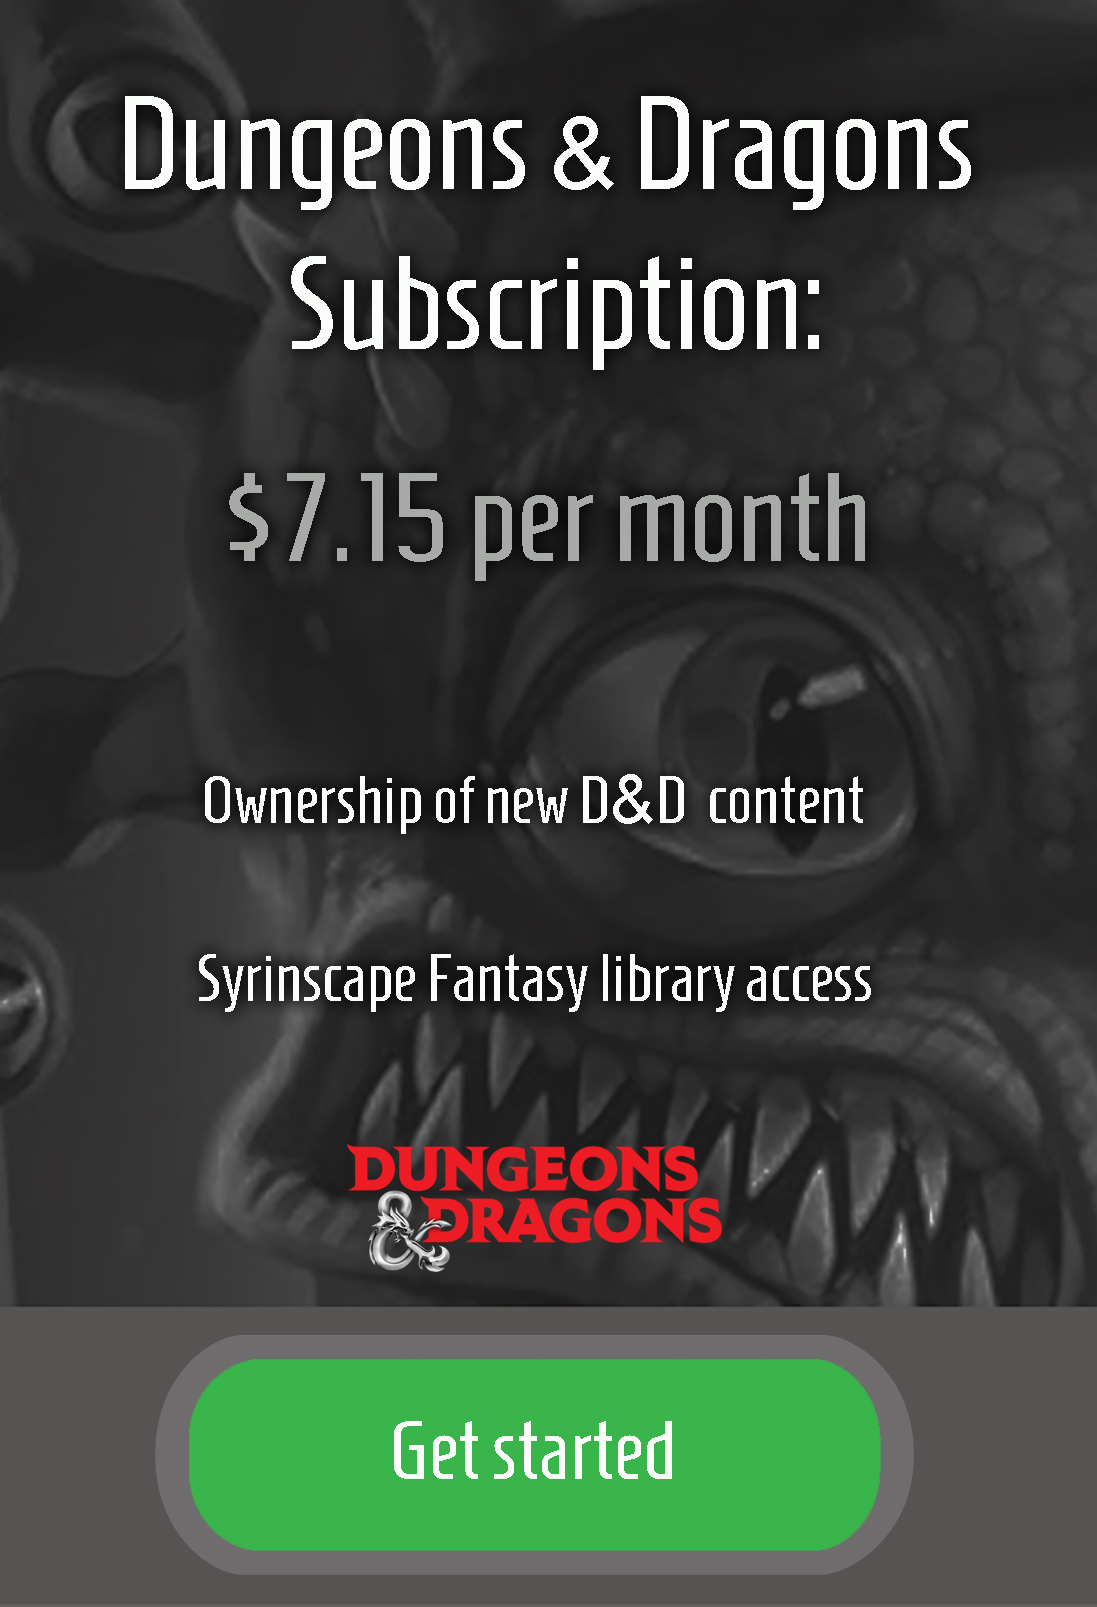 D&D Subscription signup